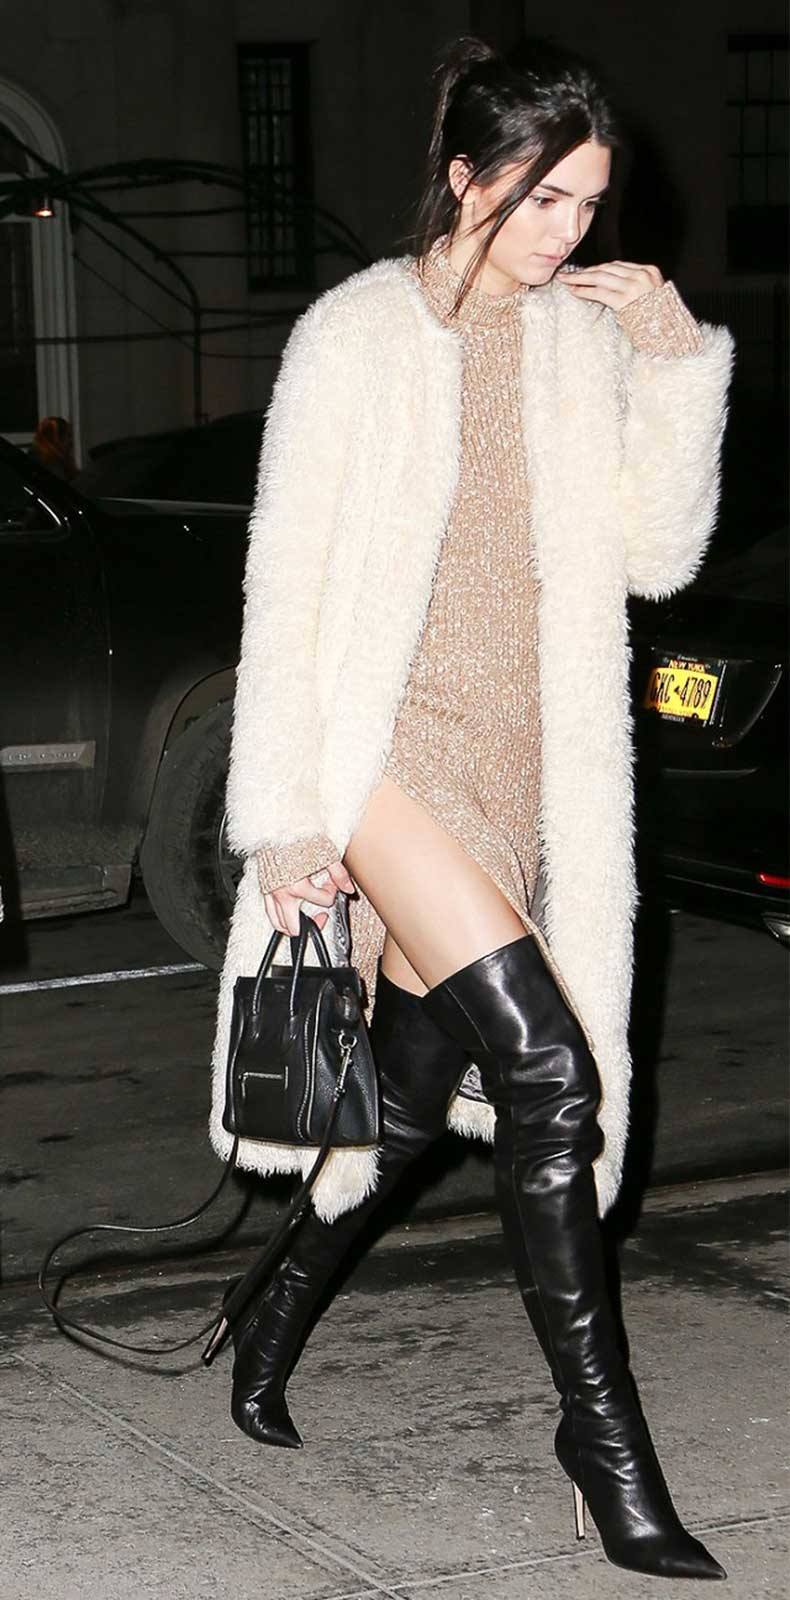 a-celebrity-guide-to-wearing-thigh-high-boots-1589971-1449700325.640x0c